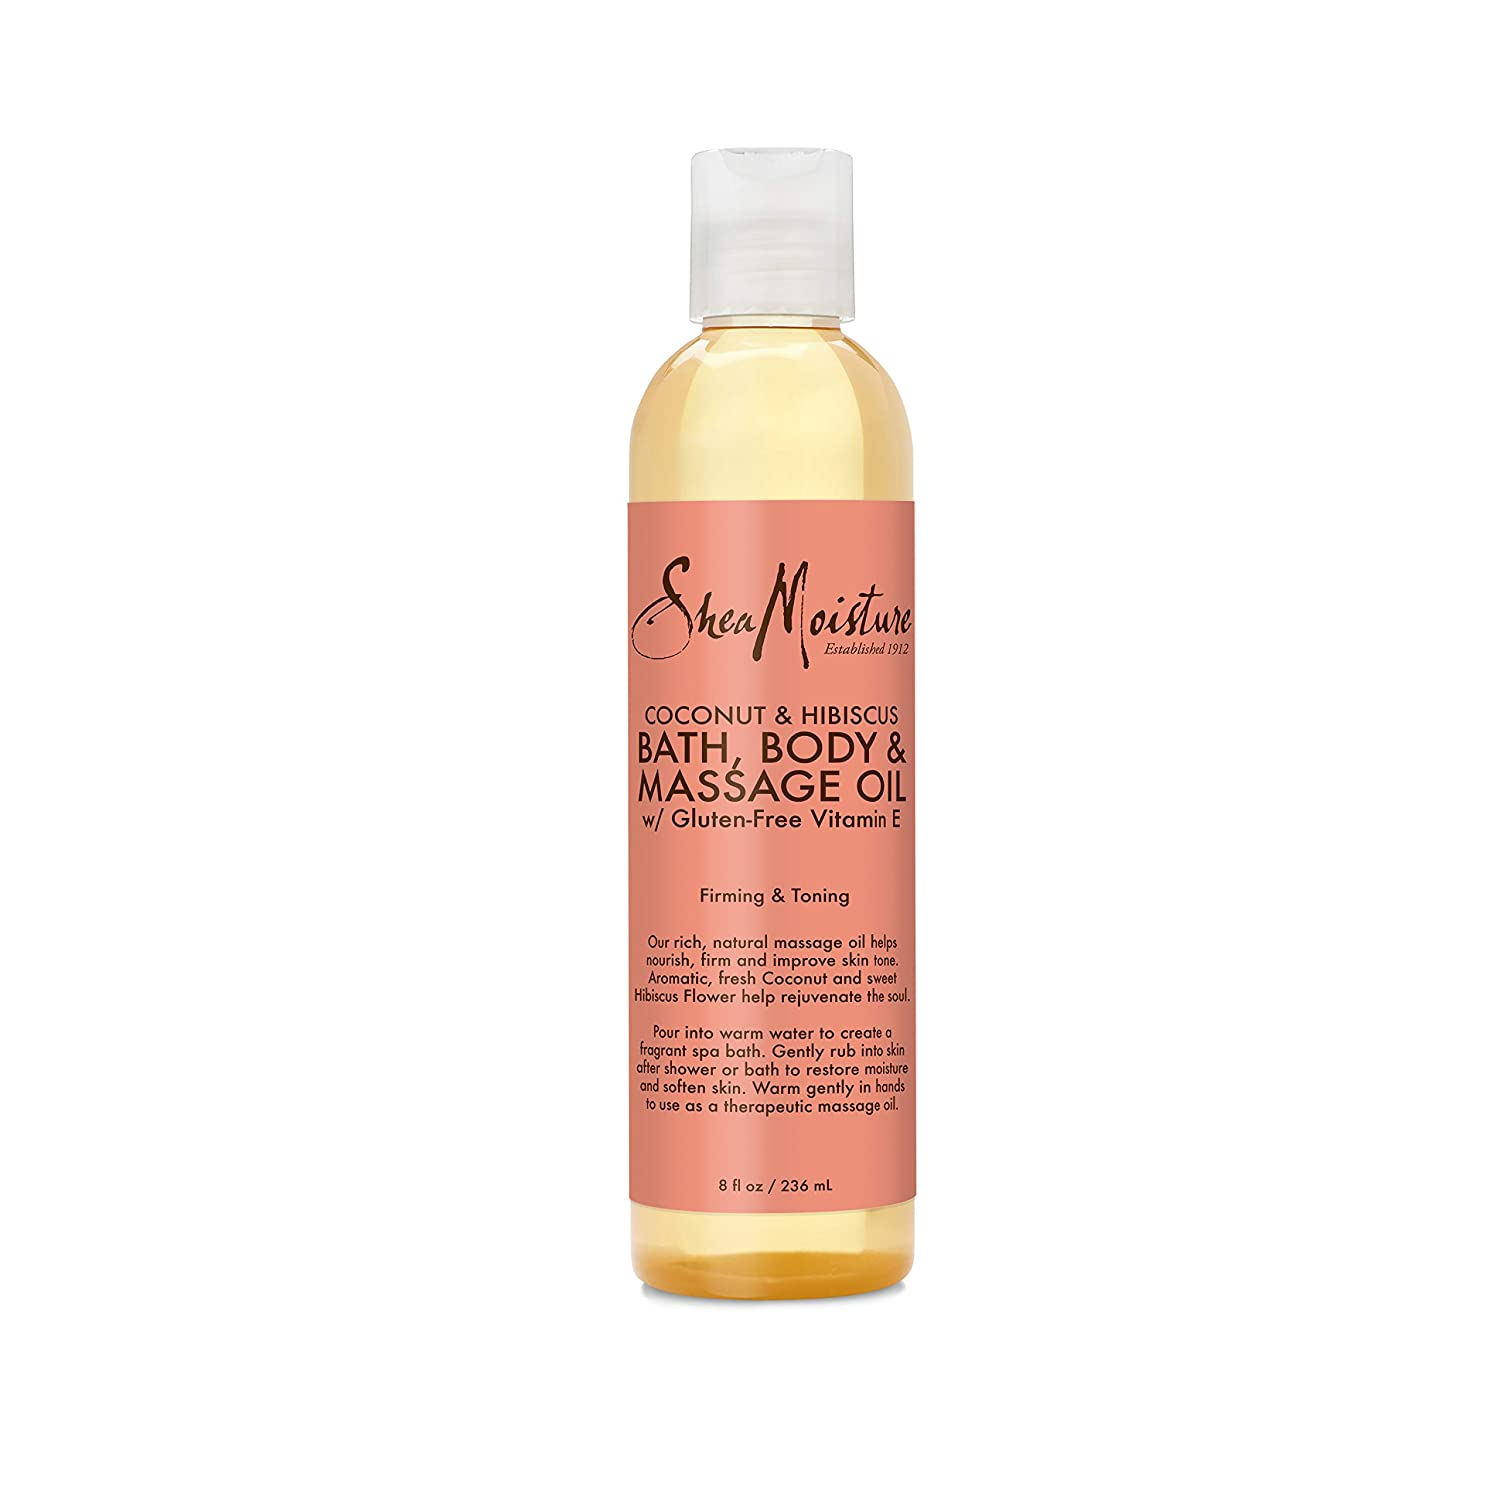 Sheamoisture Bath, Body and Massage Oil for Dry Skin Coconut Oil and Hibiscus to Illuminate Skin 8 oz